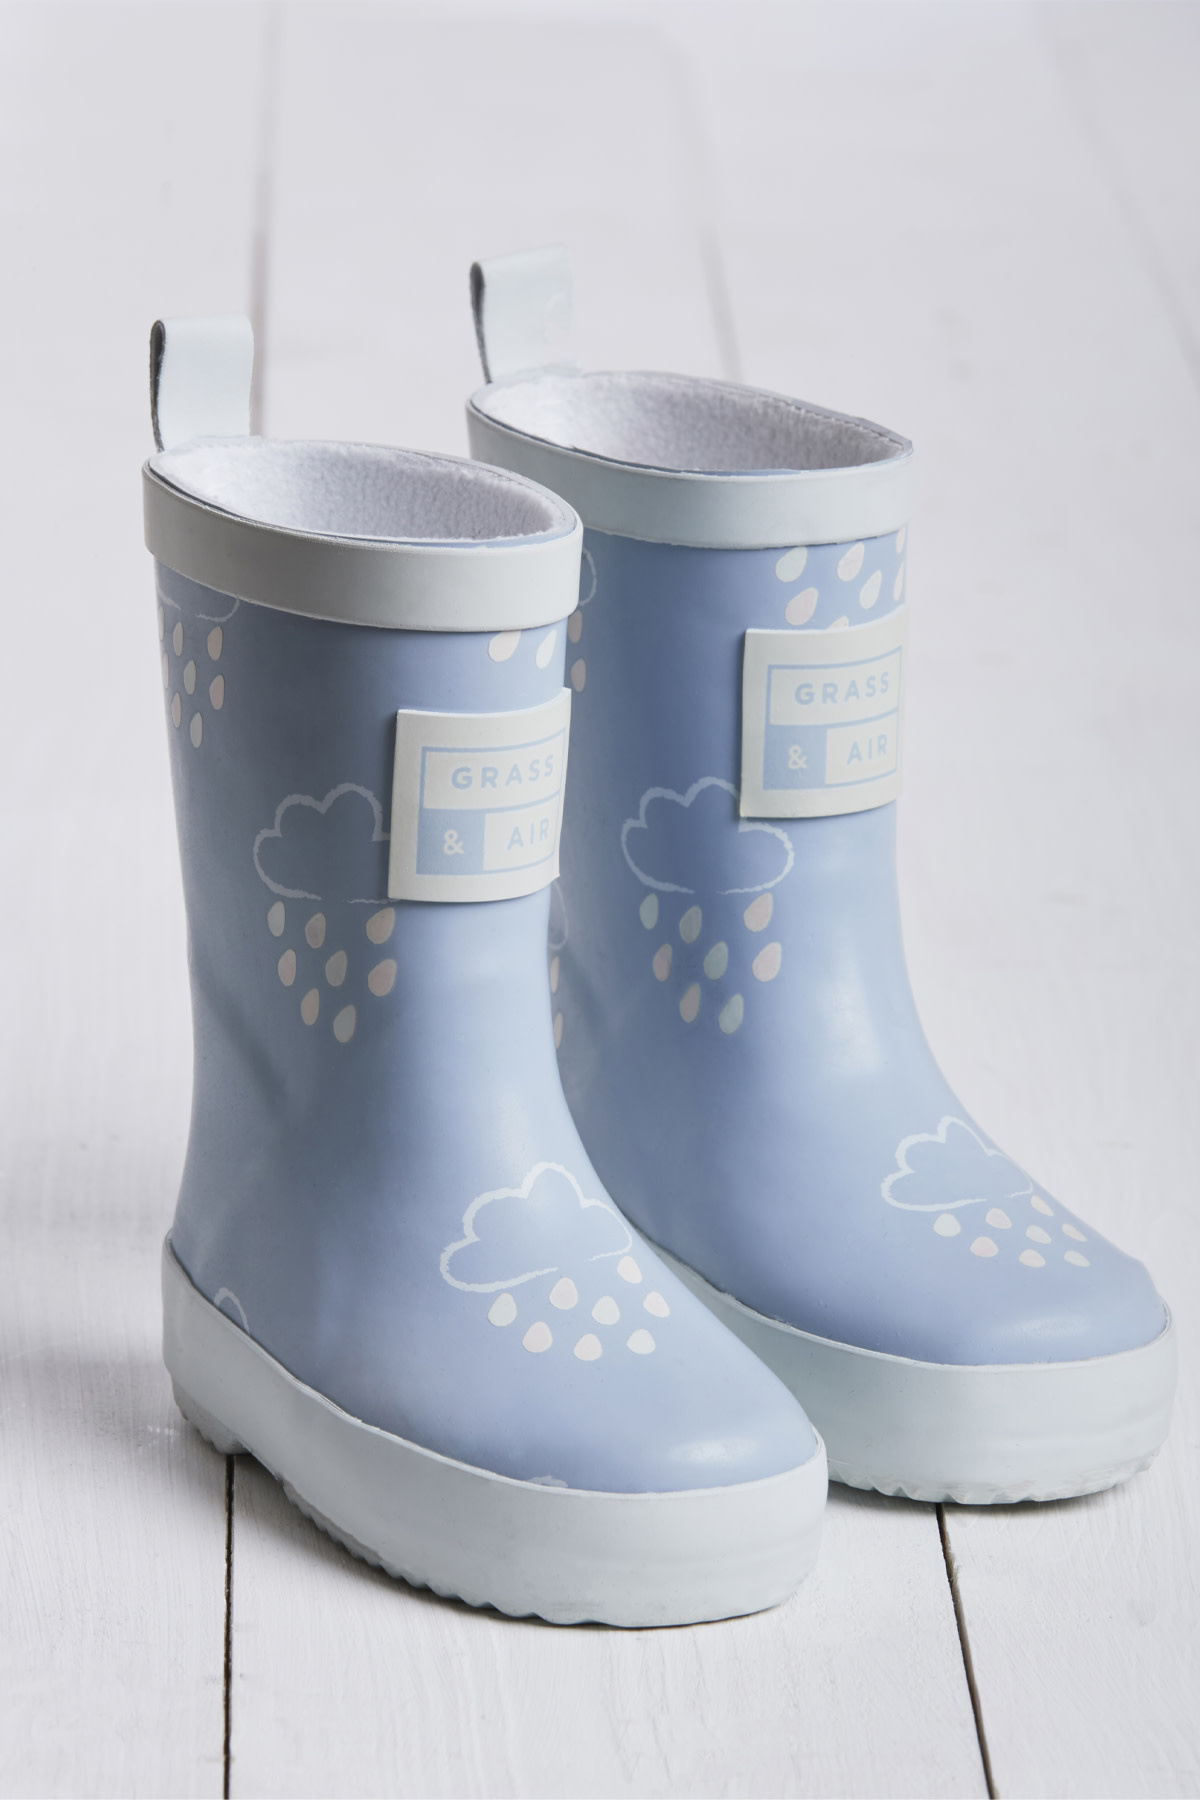 Grass And Air Grass and Air Colour Revealing Wellington Boots Baby Blue